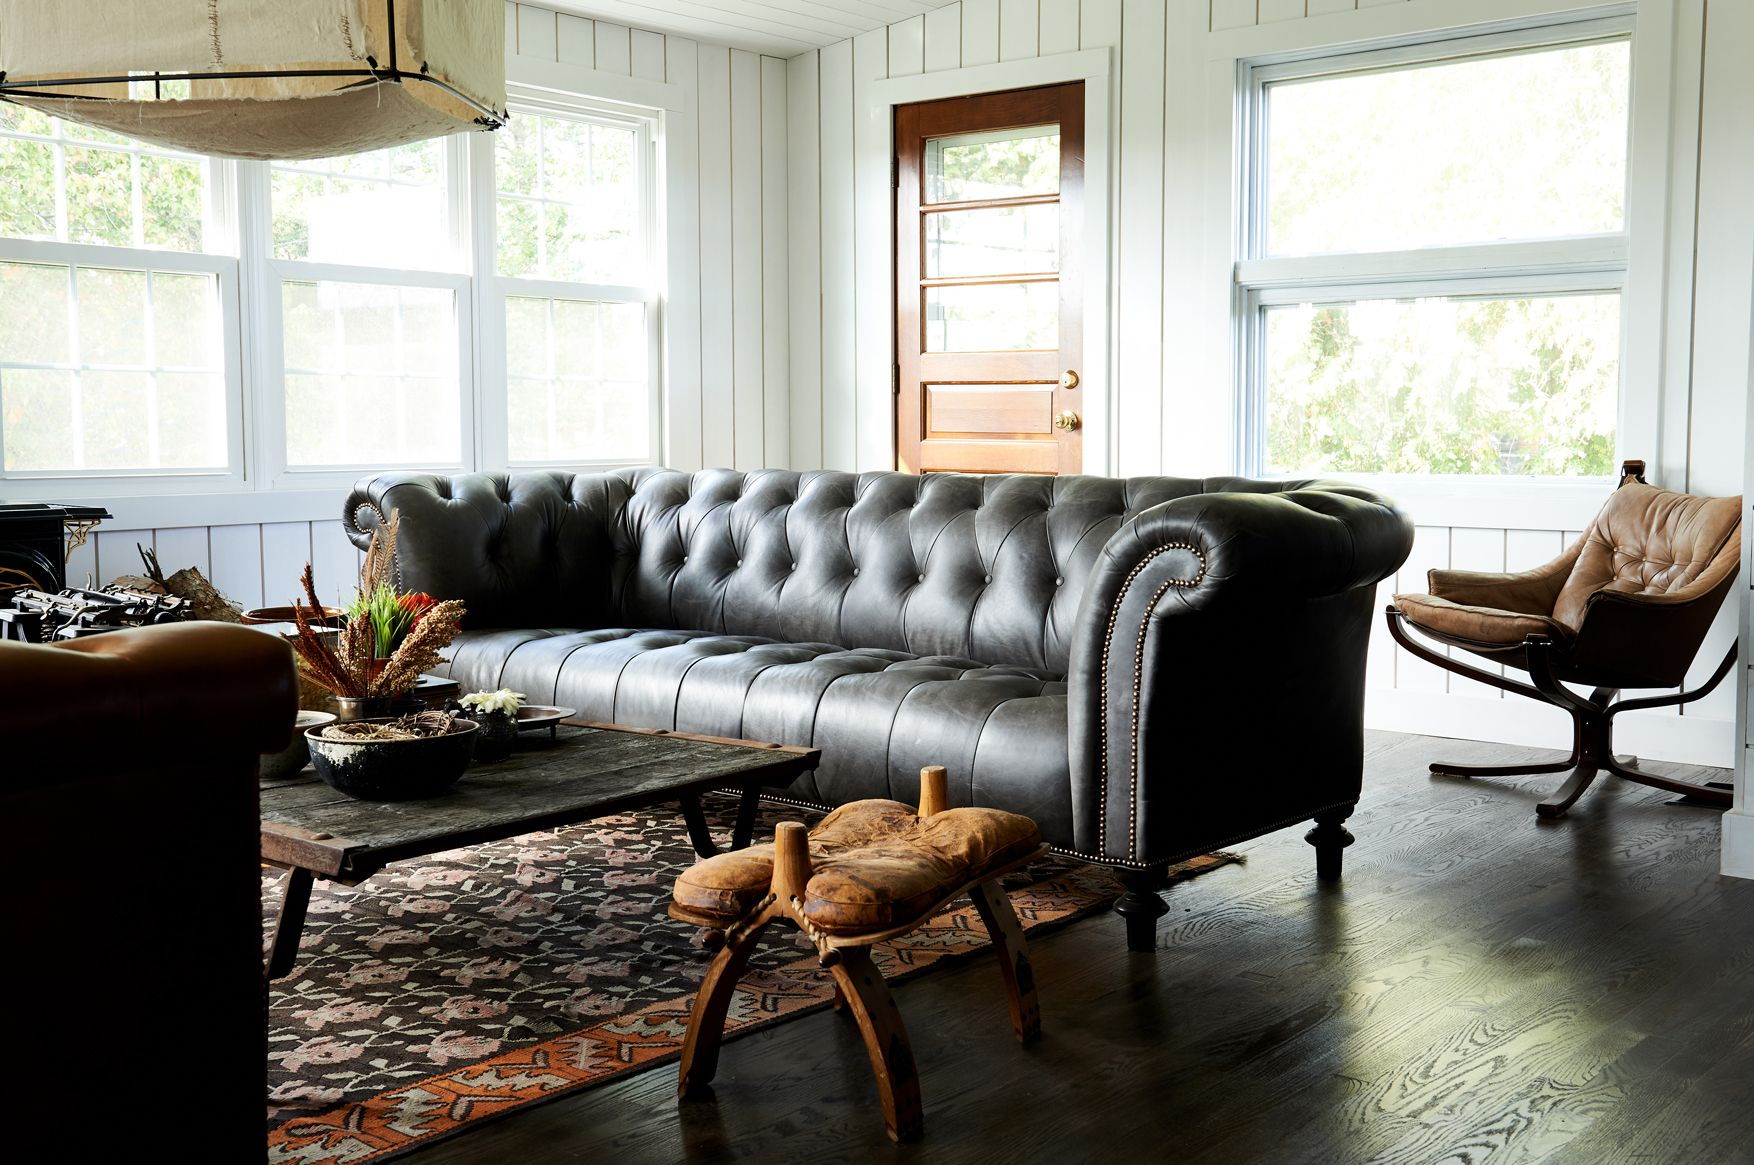 Restored by the Fords - Leanne Ford Interiors - The Brock Project - Shot by Alexandra Ribar // Sofas from Weiss House Furniture #leannefordinteriors